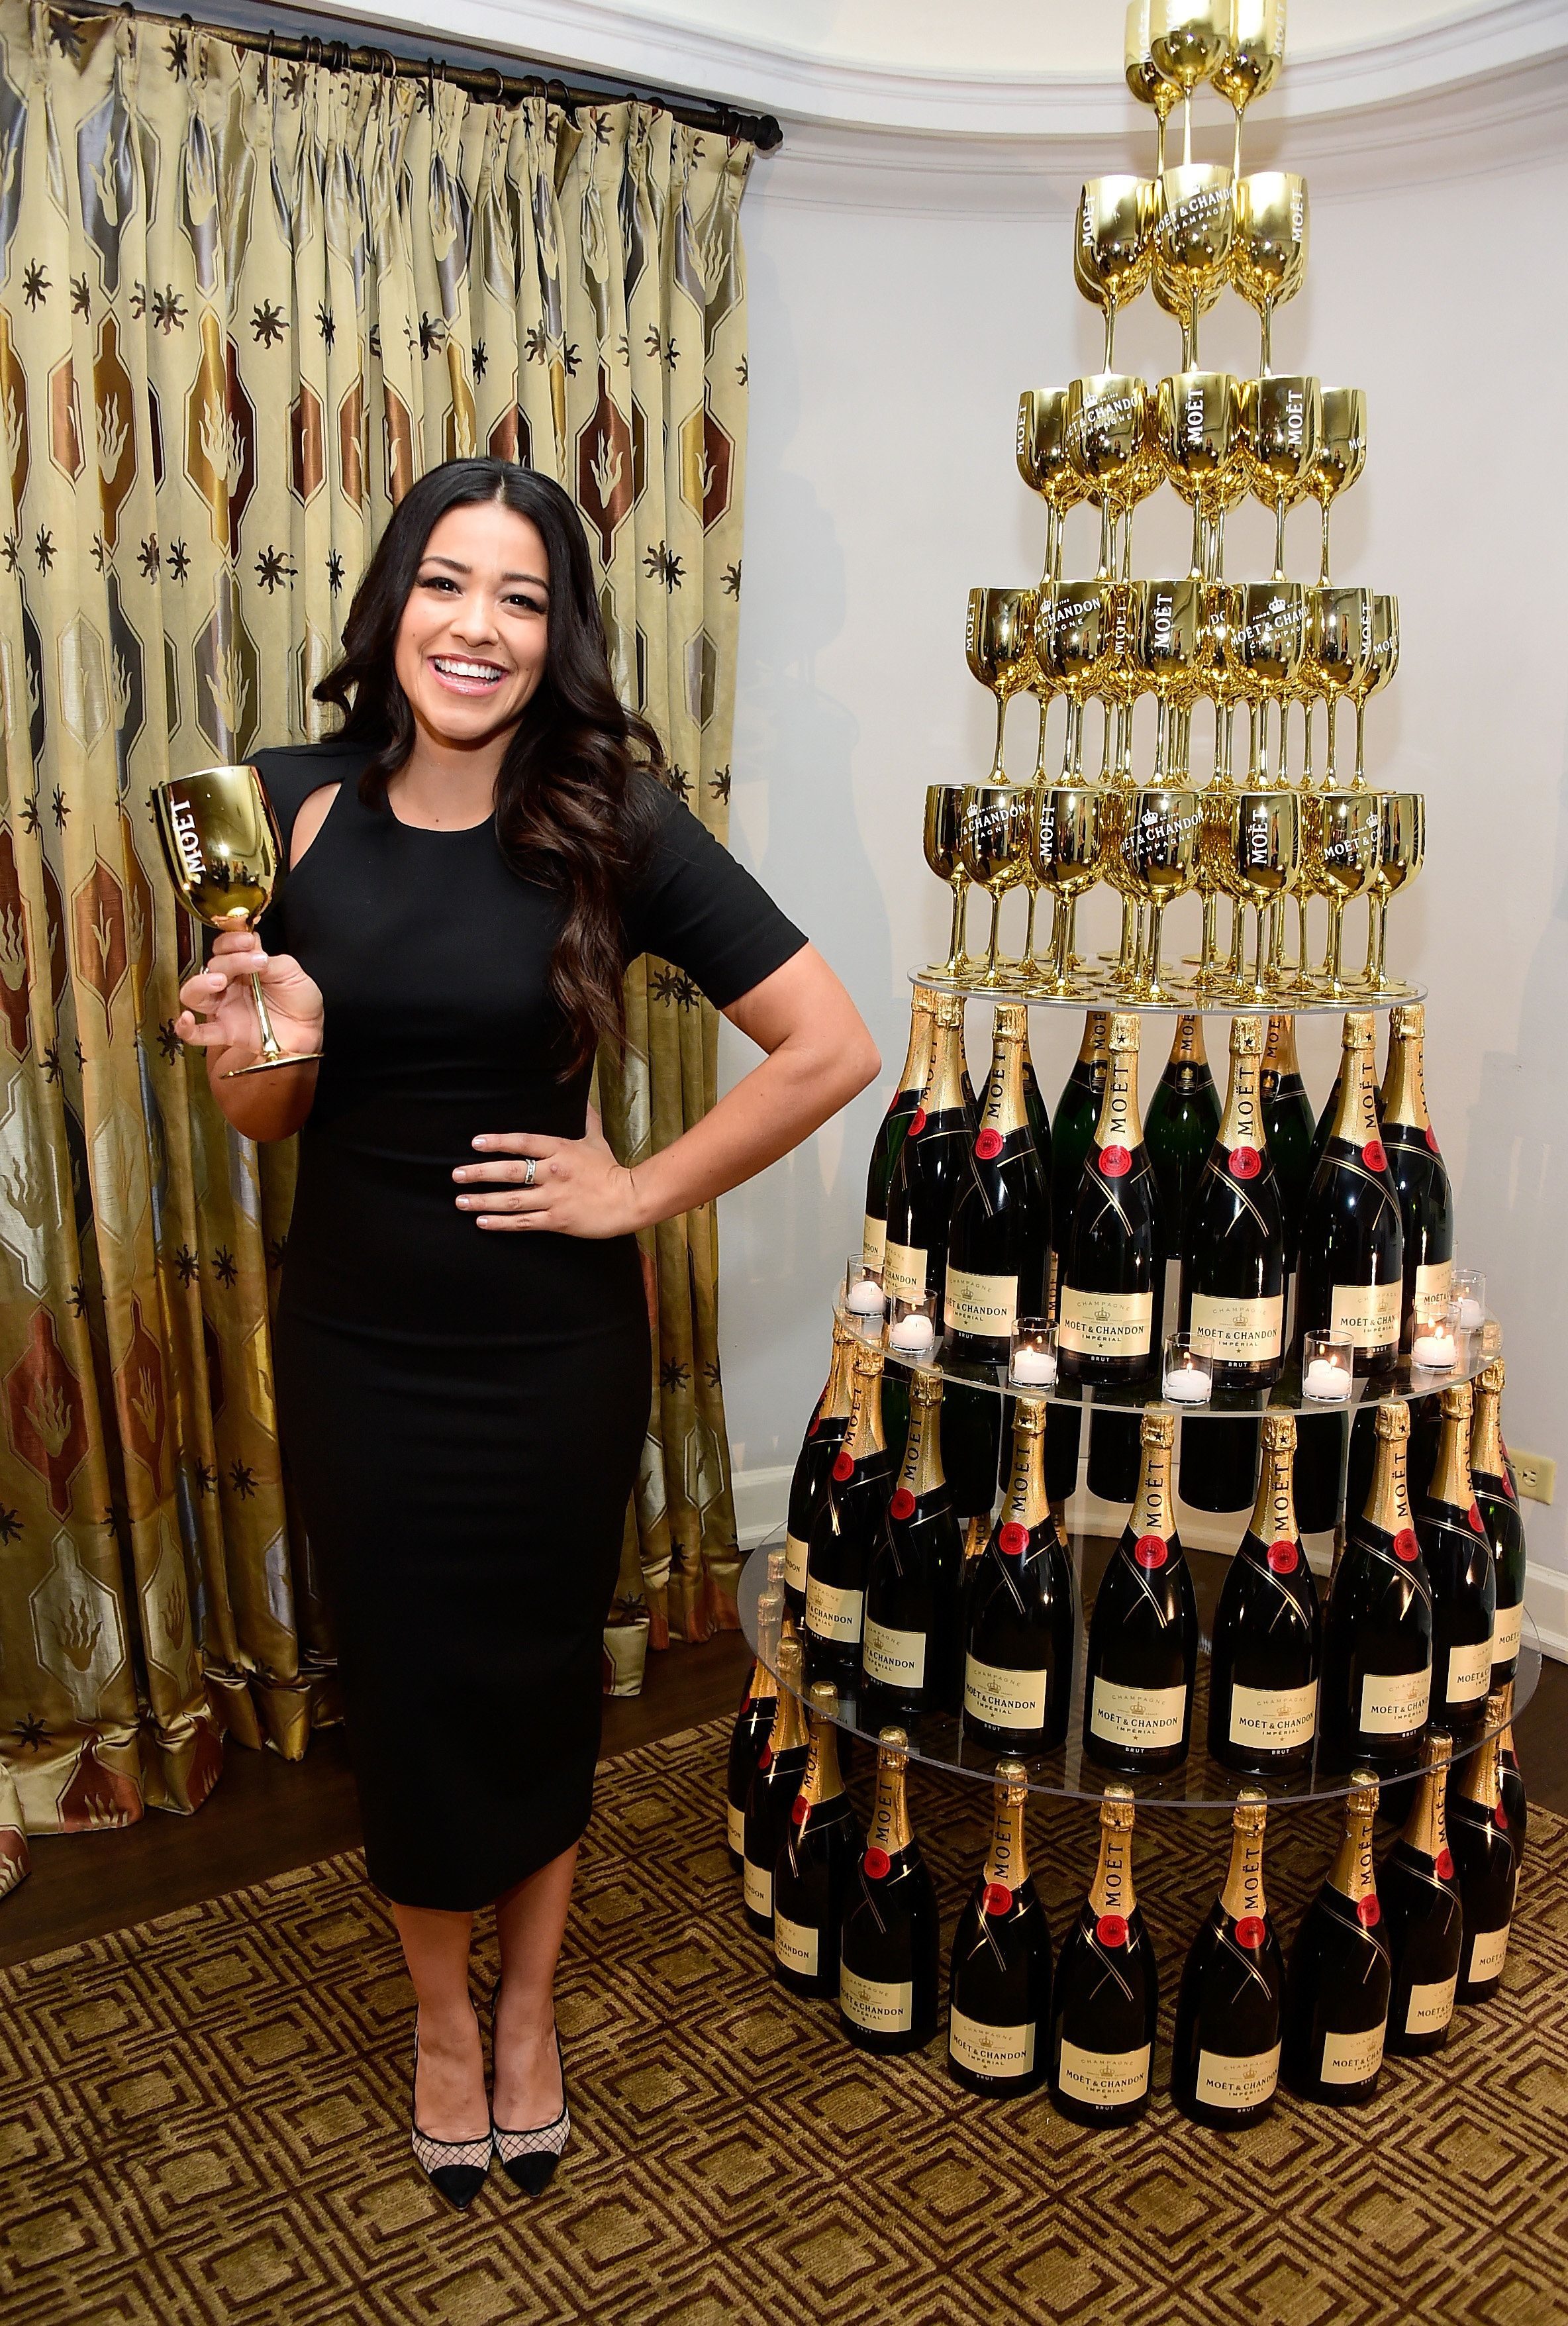 LOS ANGELES, CA - DECEMBER 08:  Actress Gina Rodriguez attends Moët & Chandon and 2015 Golden Globe winner Gina Rodriguez celebrate Moets 25th Anniversary at the Golden Globes with the launch of The Moët Moment Film Festival Competition at the Chateau Marmont in Los Angeles on December 8, 2015 in Los Angeles, California.  (Photo by Frazer Harrison/Getty Images for Moet & Chandon)